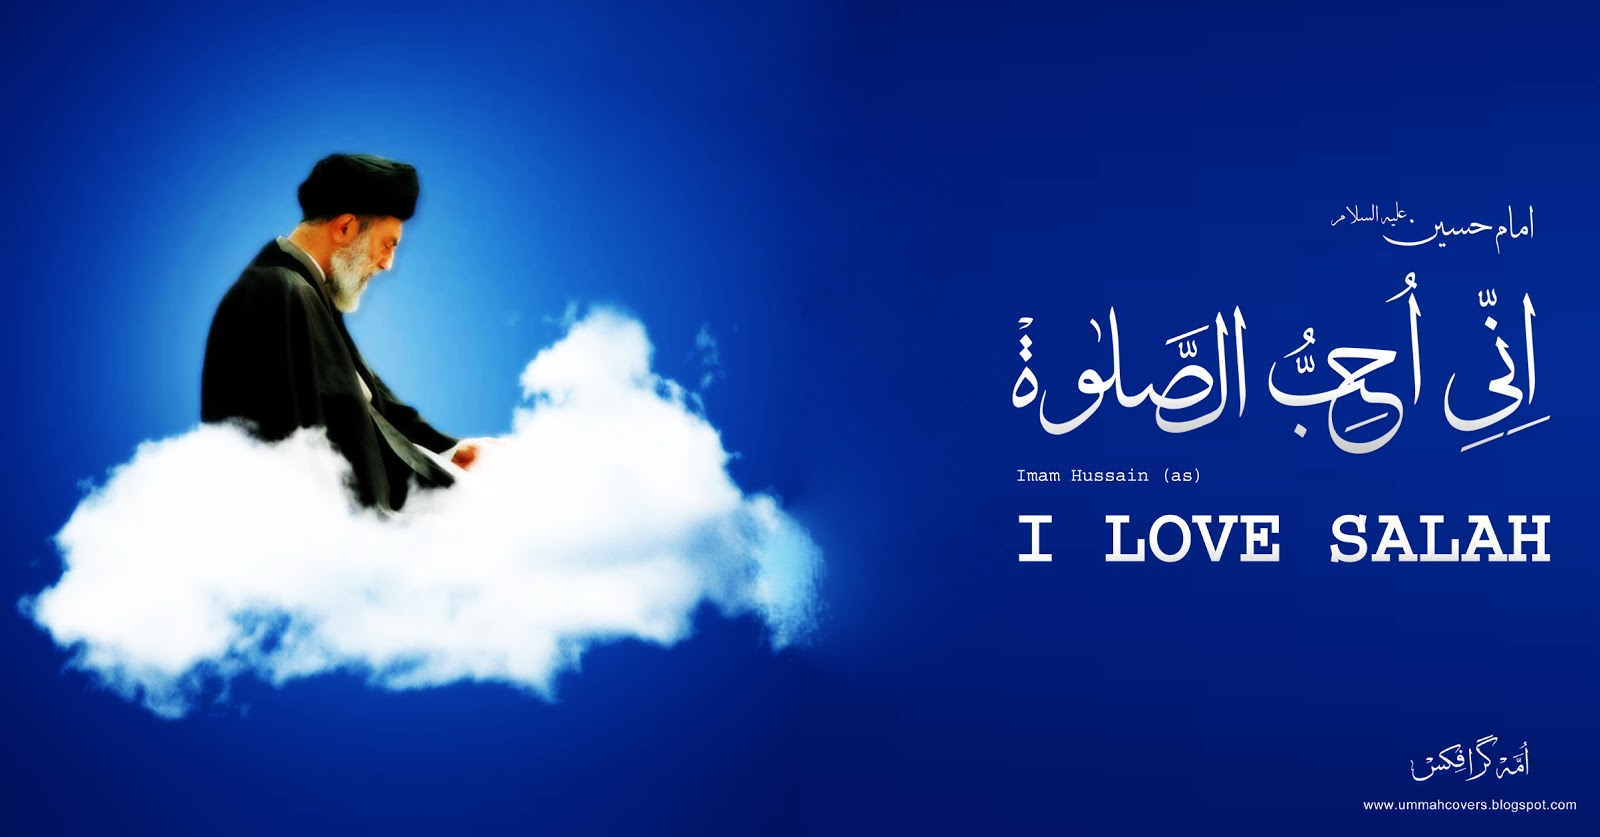 Love Wallpaper In Fb : UMMAH Graphics: I Love Salah ( Imam Hussain a.s ) Wallpaper + FB cover